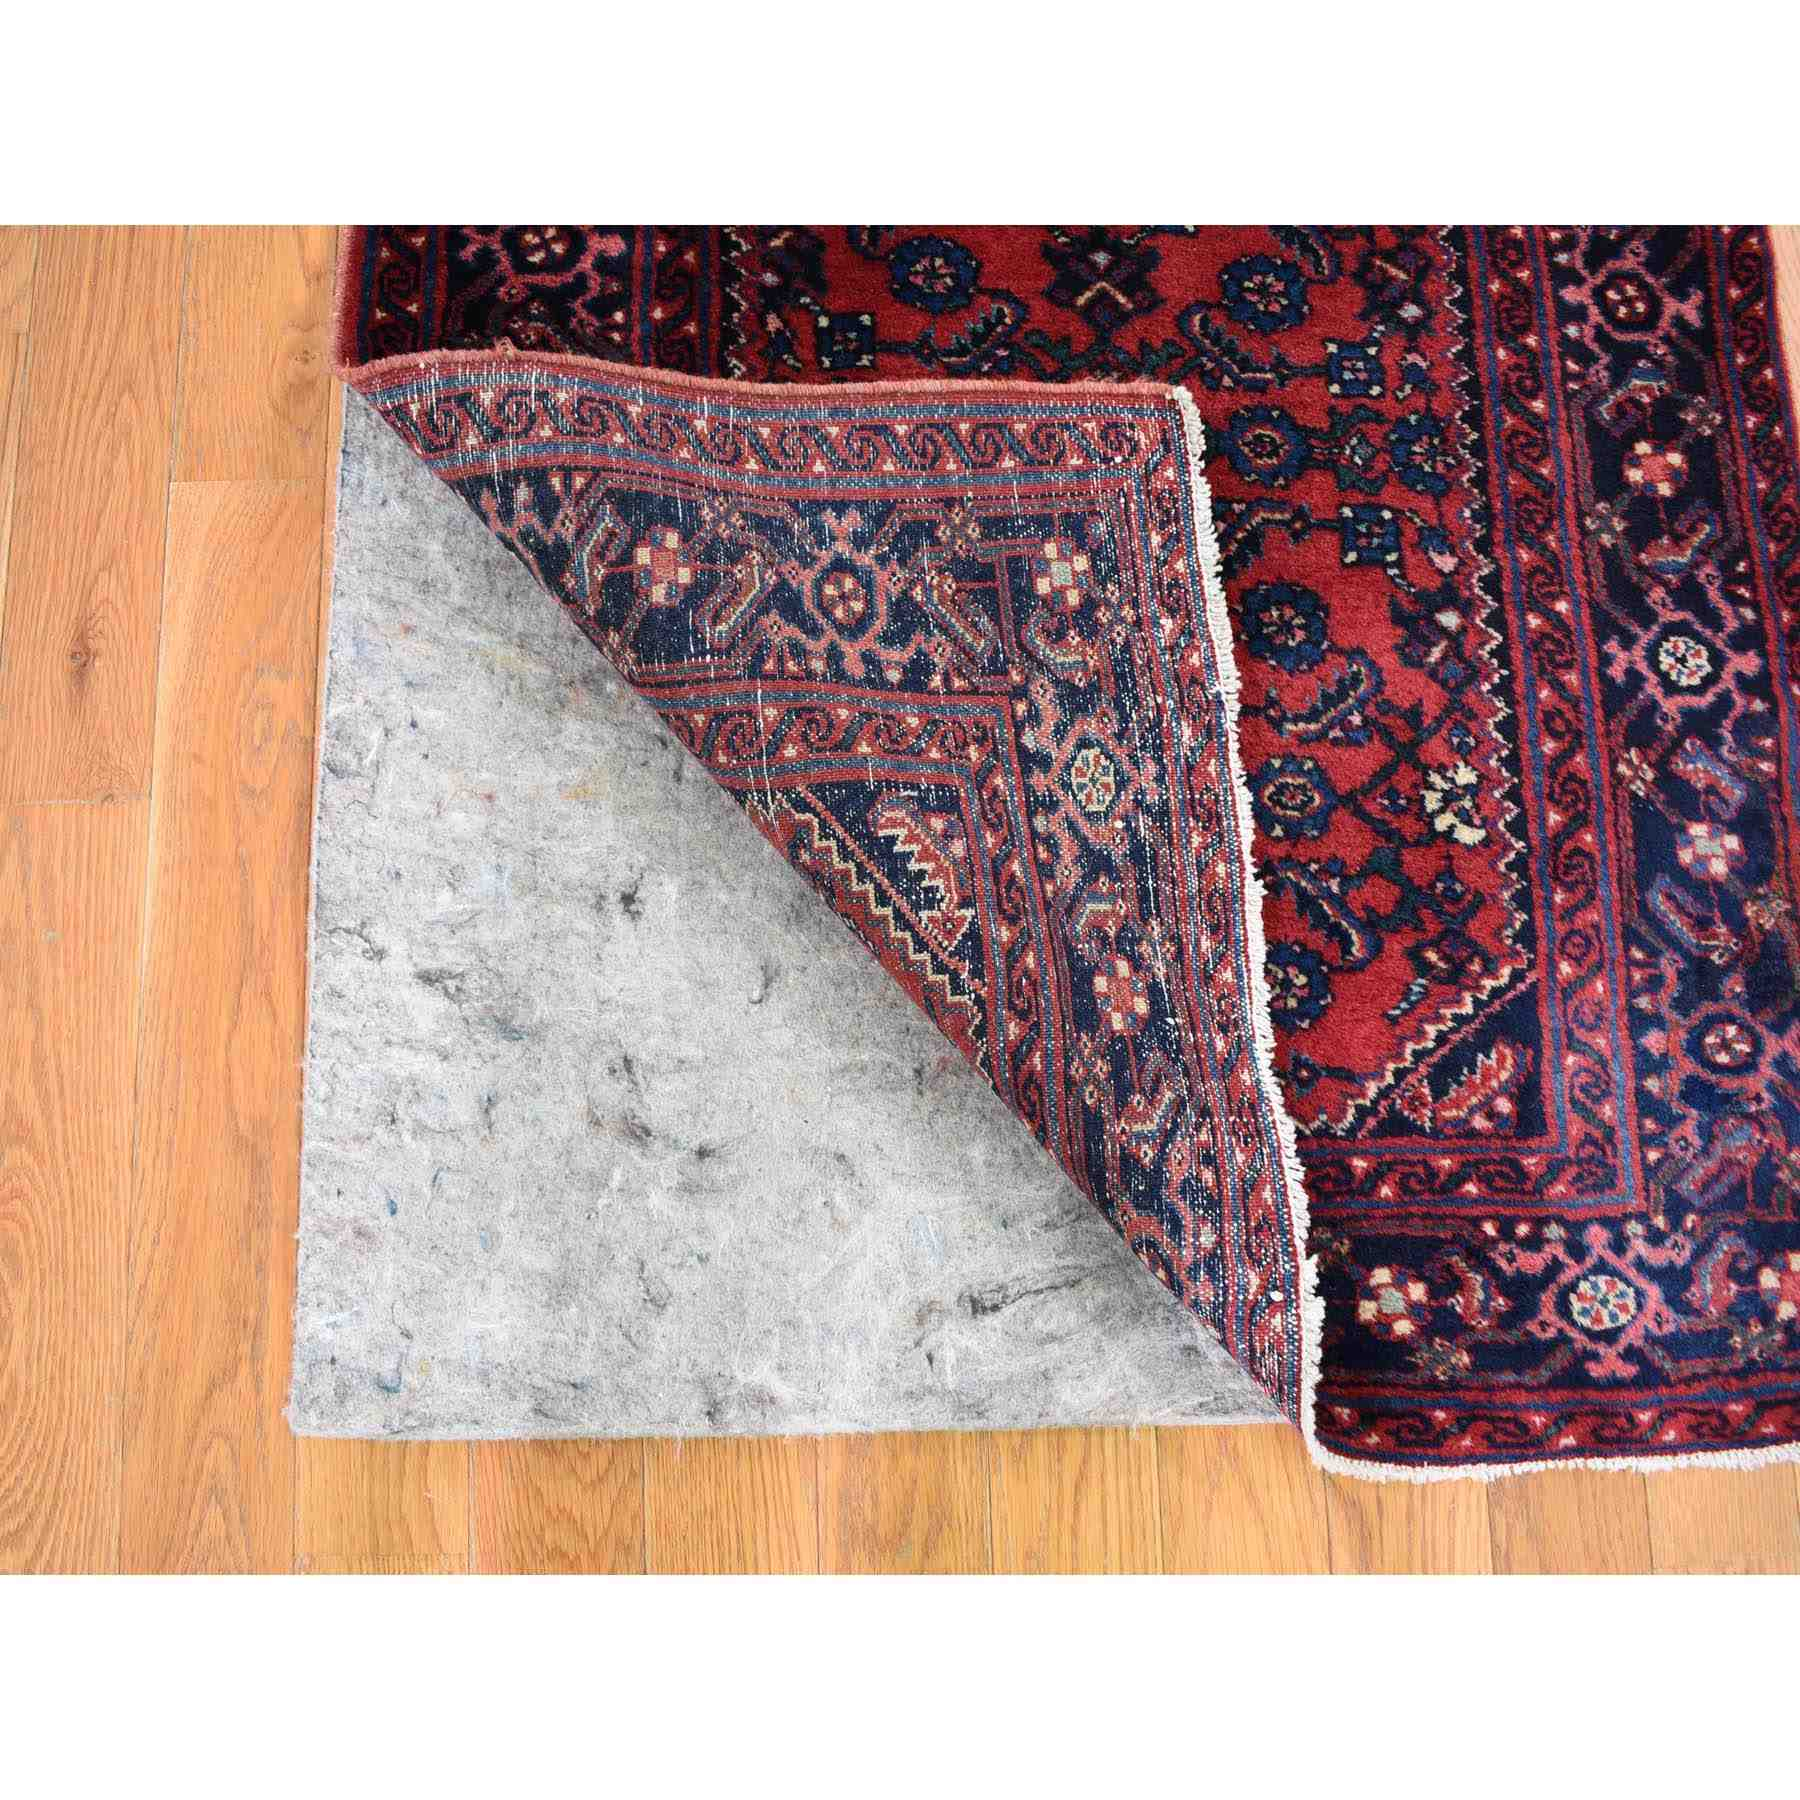 Antique-Hand-Knotted-Rug-296485